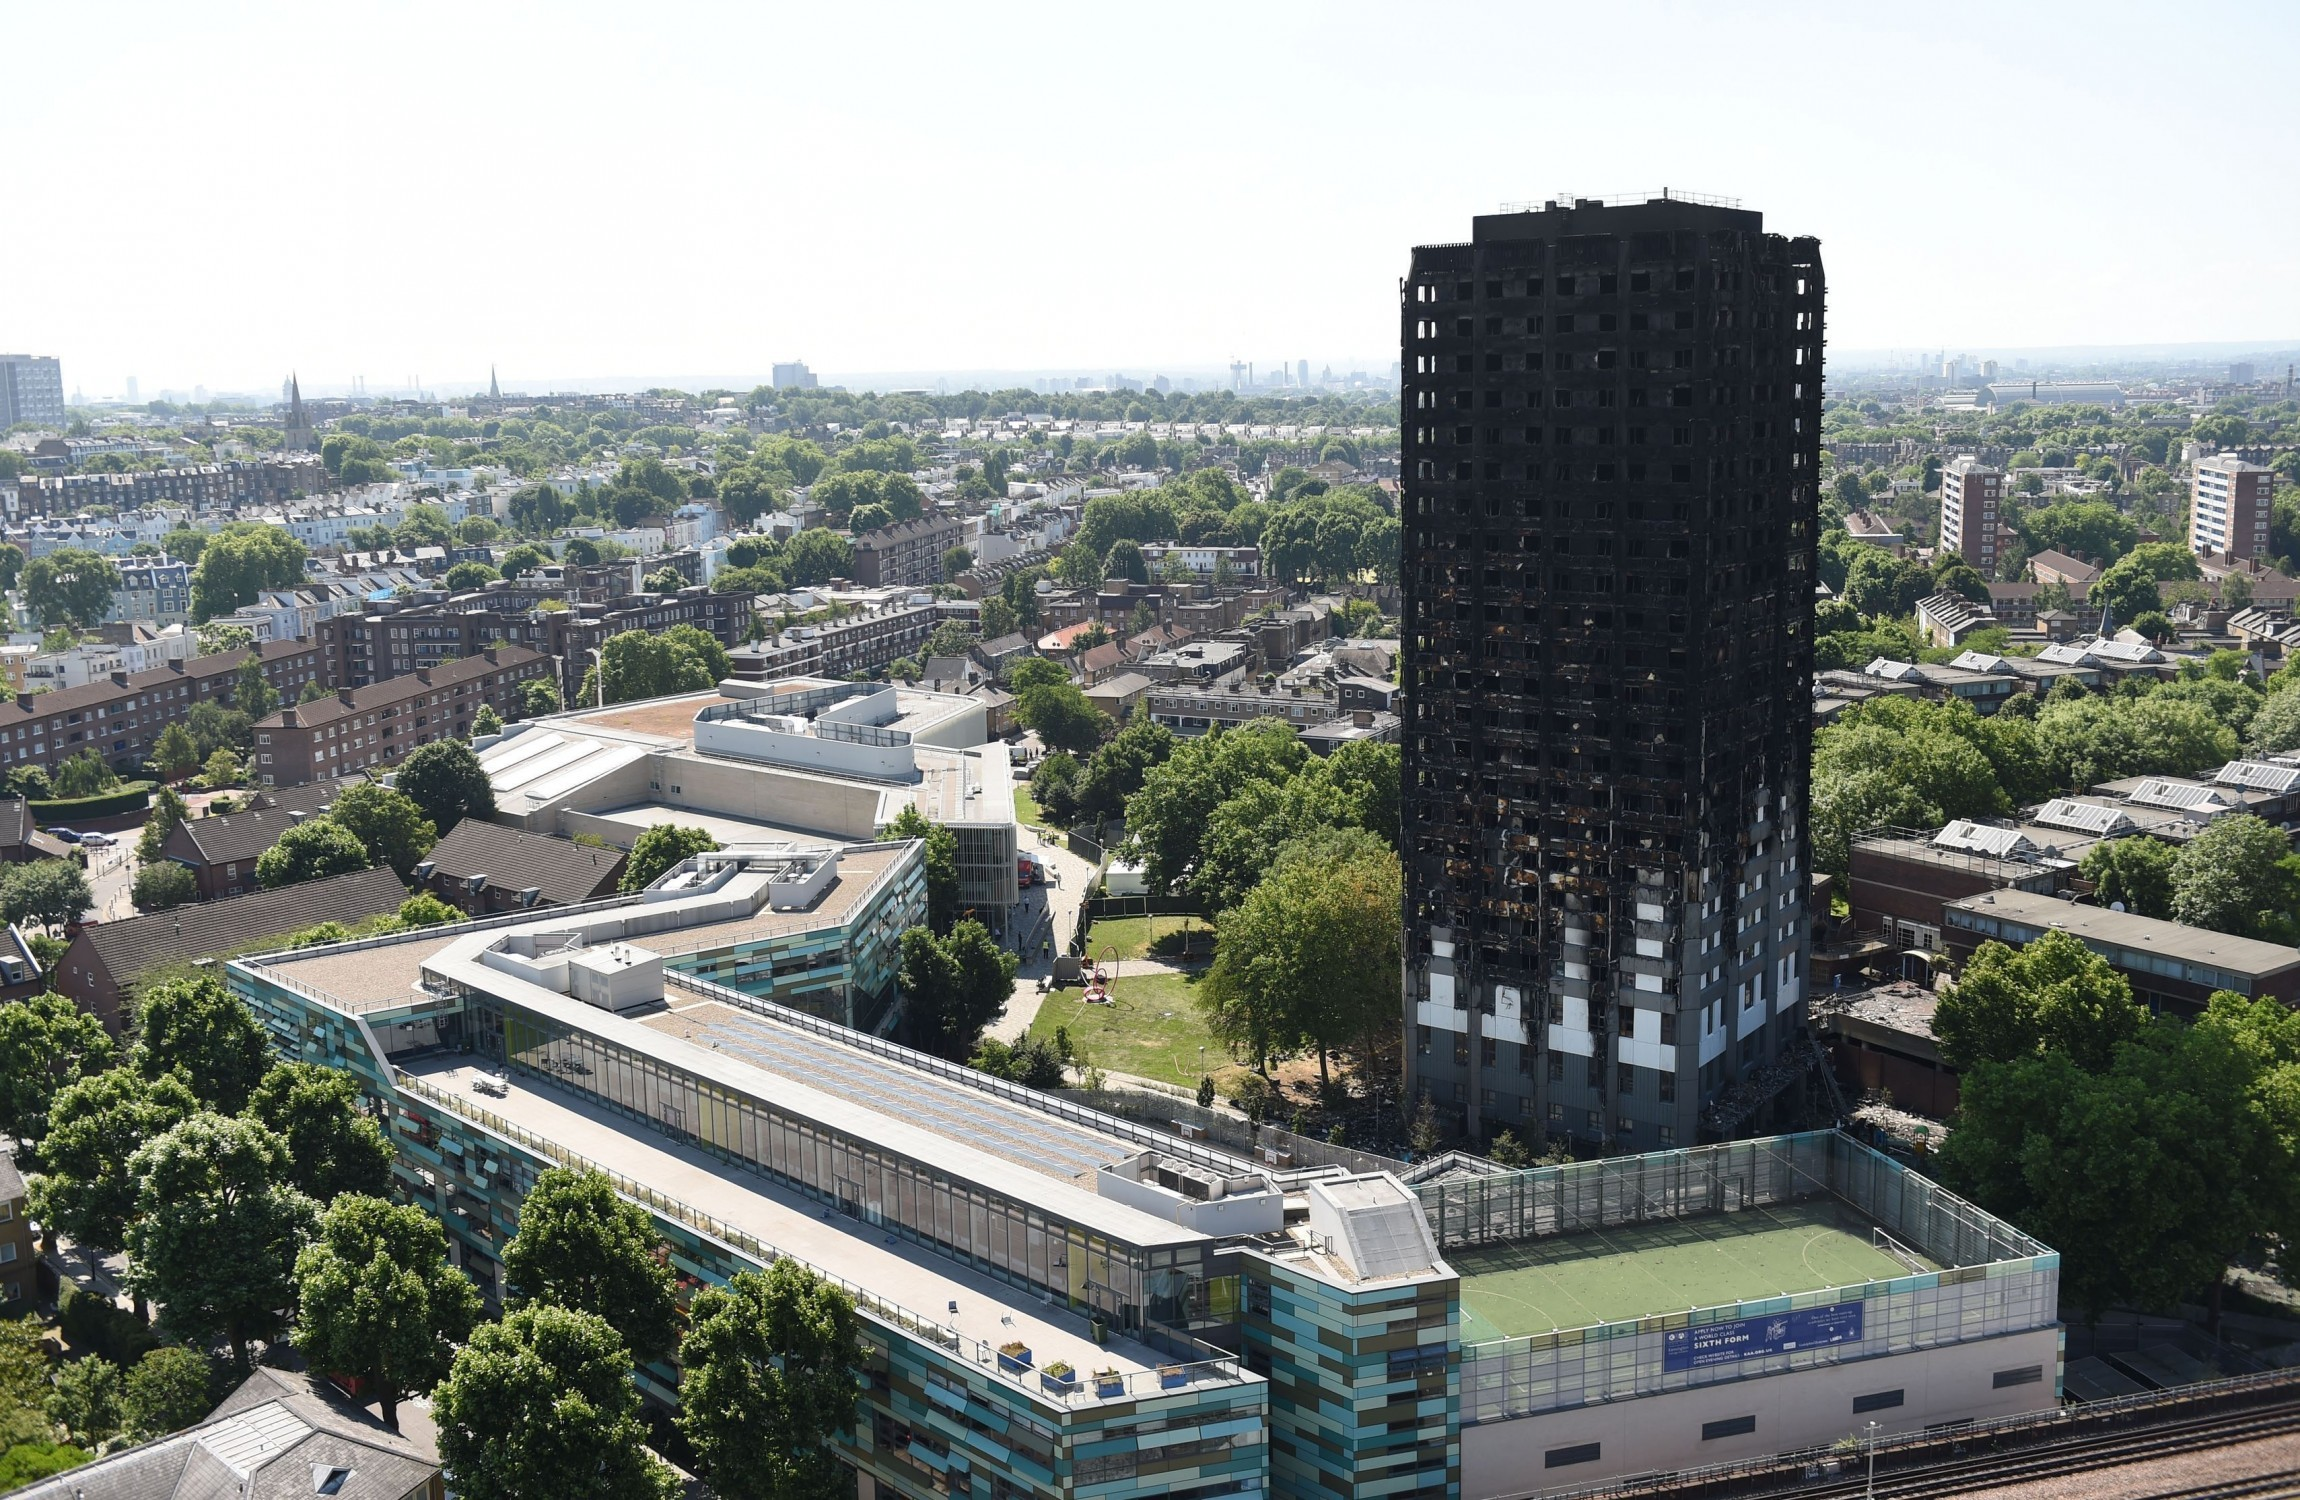 London tower fire: 79 now feared dead